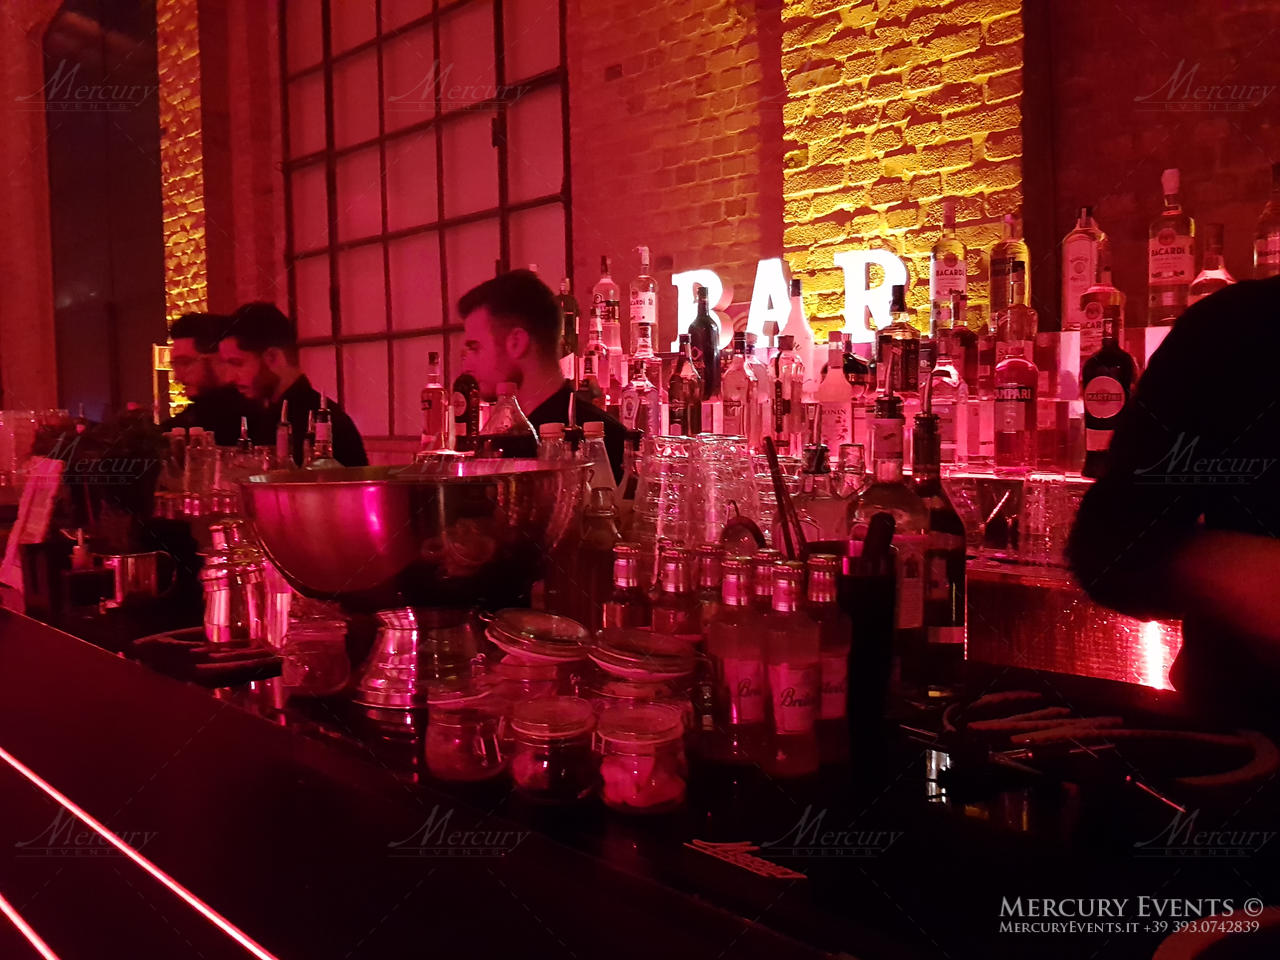 Nuova Jaguar ePace - Area 56 - Open bar Cocktail